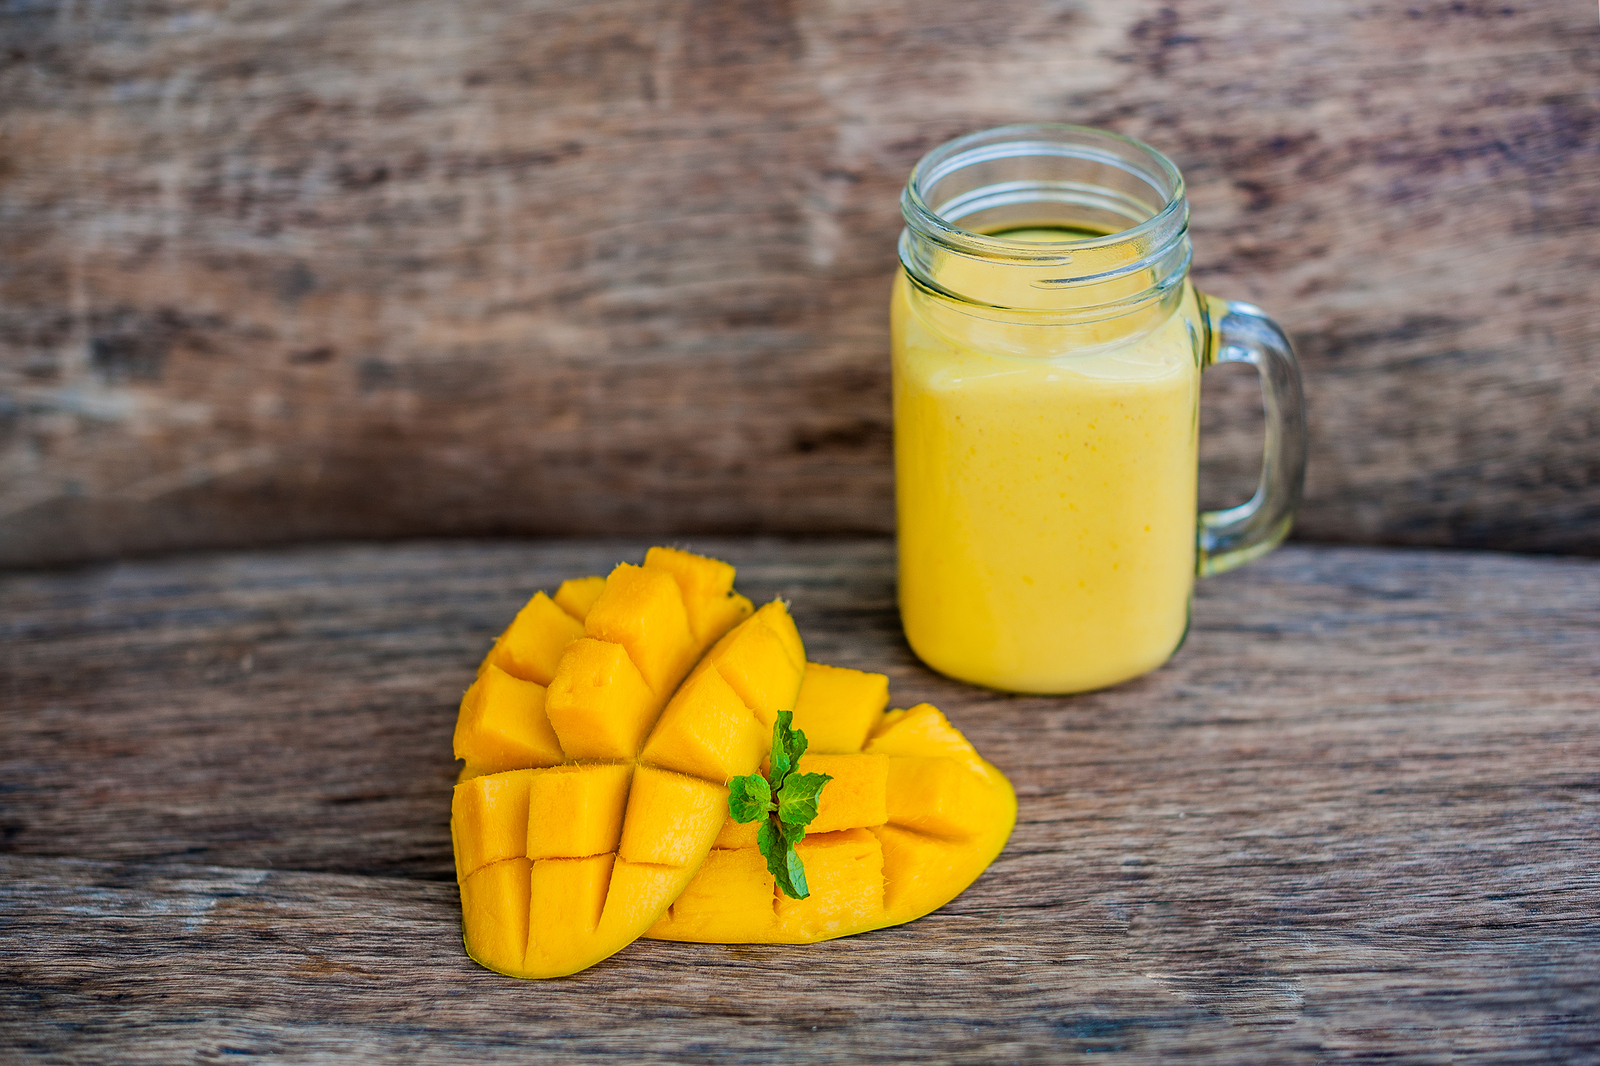 Add mangoes to your protein smoothie to get an antioxidant boost.